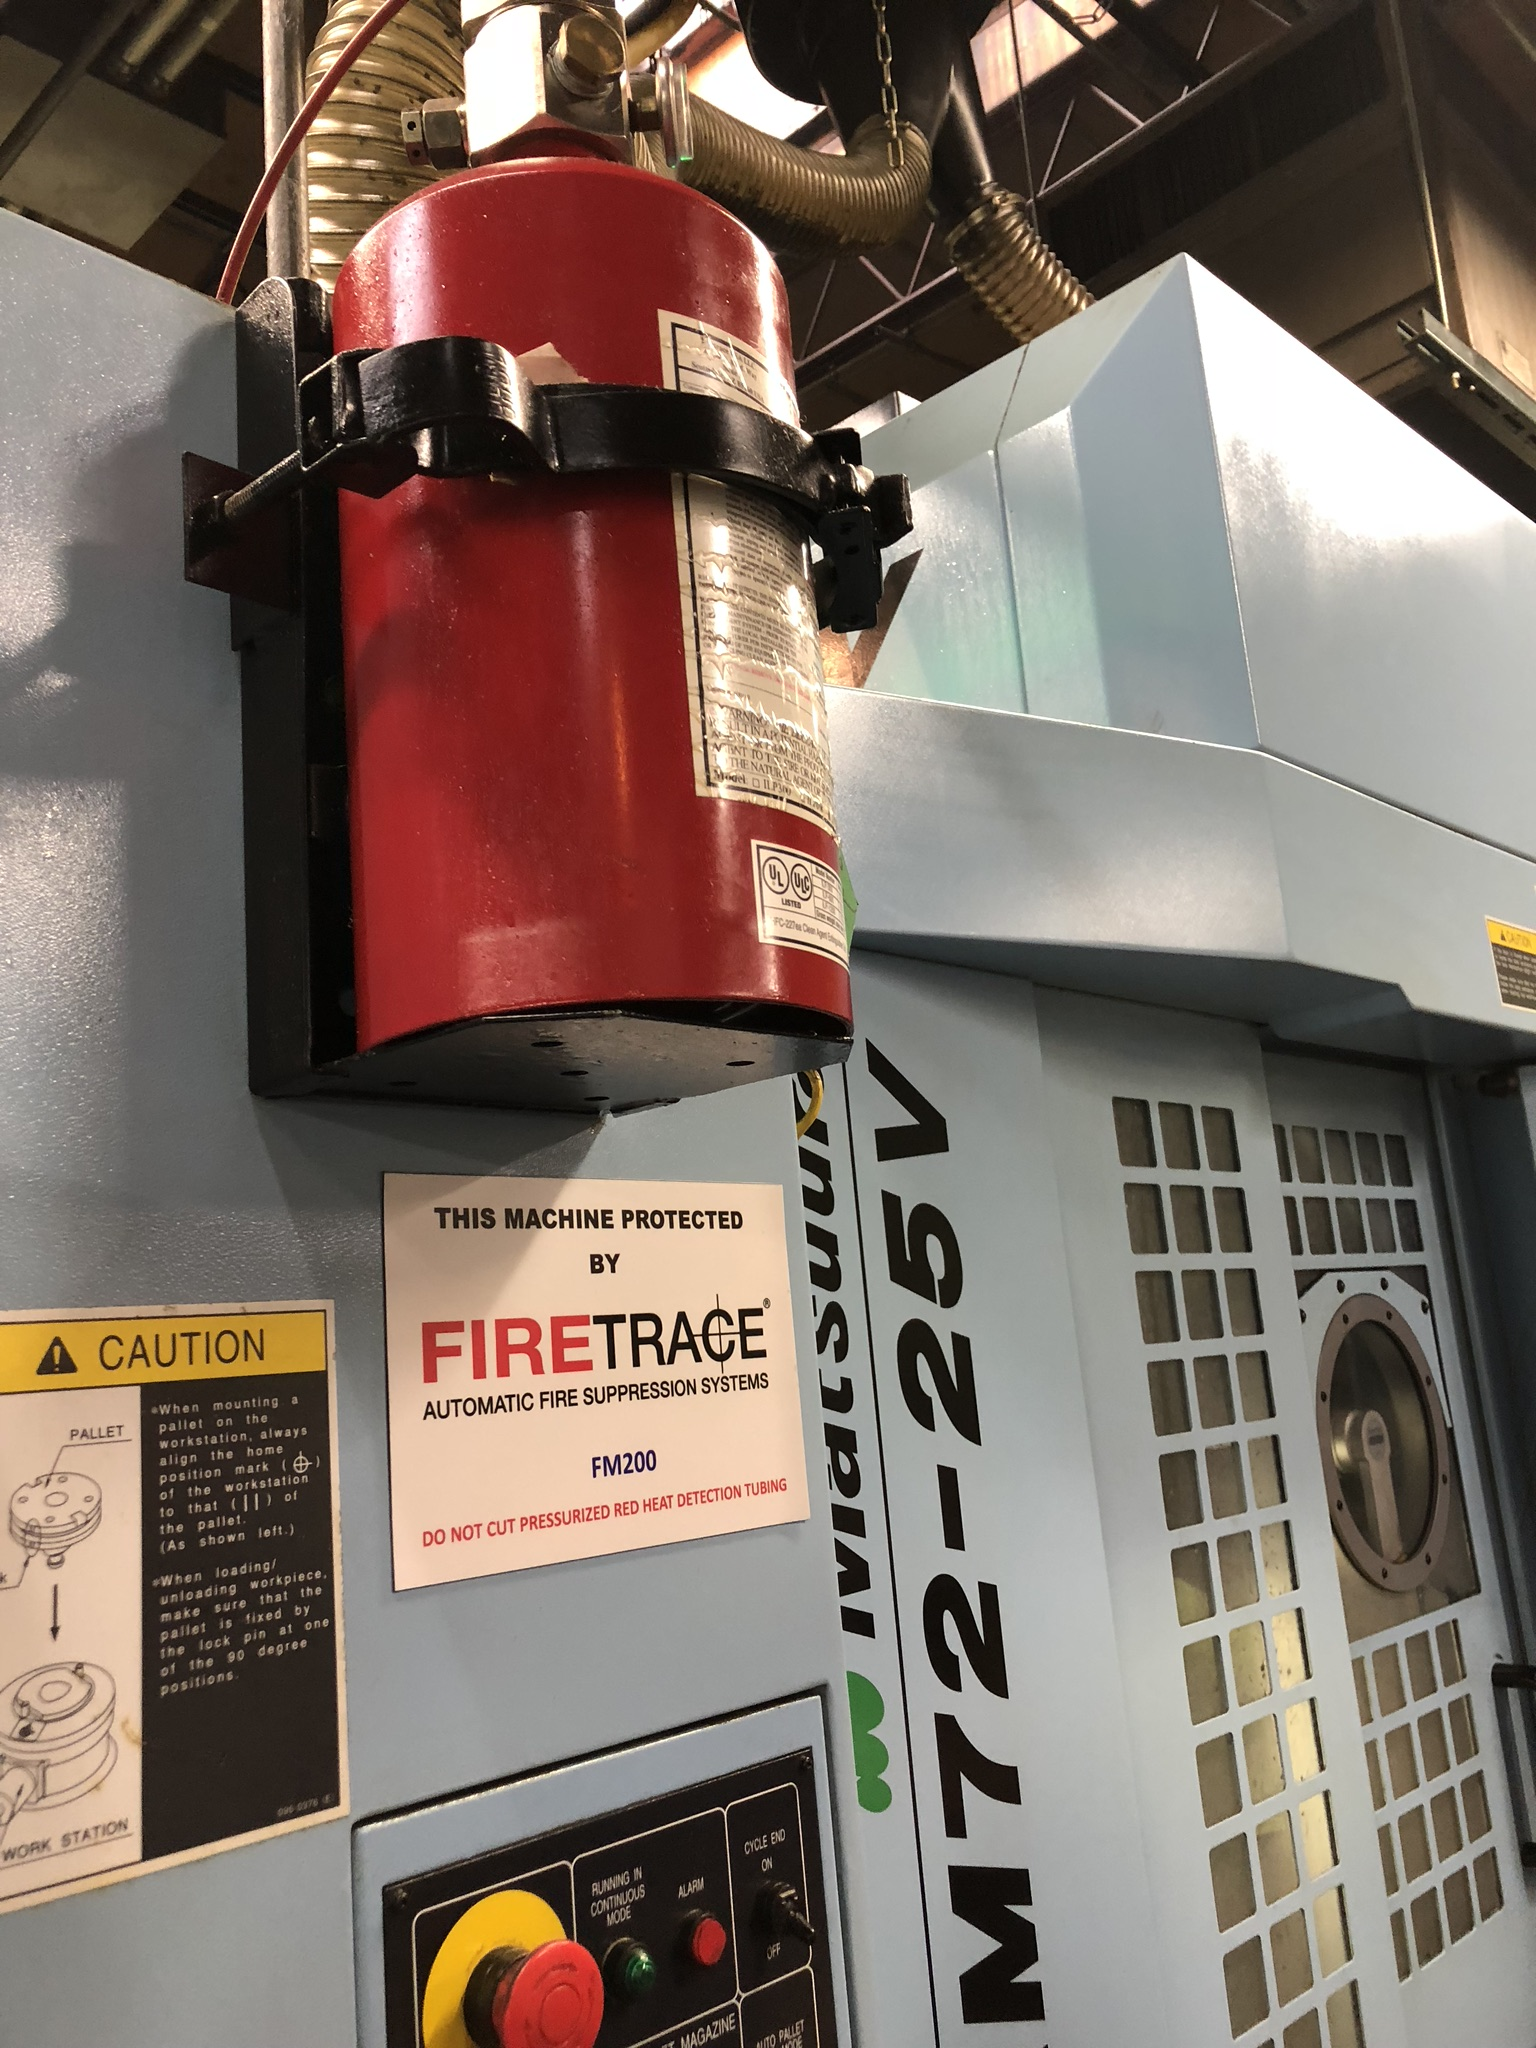 CNC Grinder - This Machine Protected by Firetrace